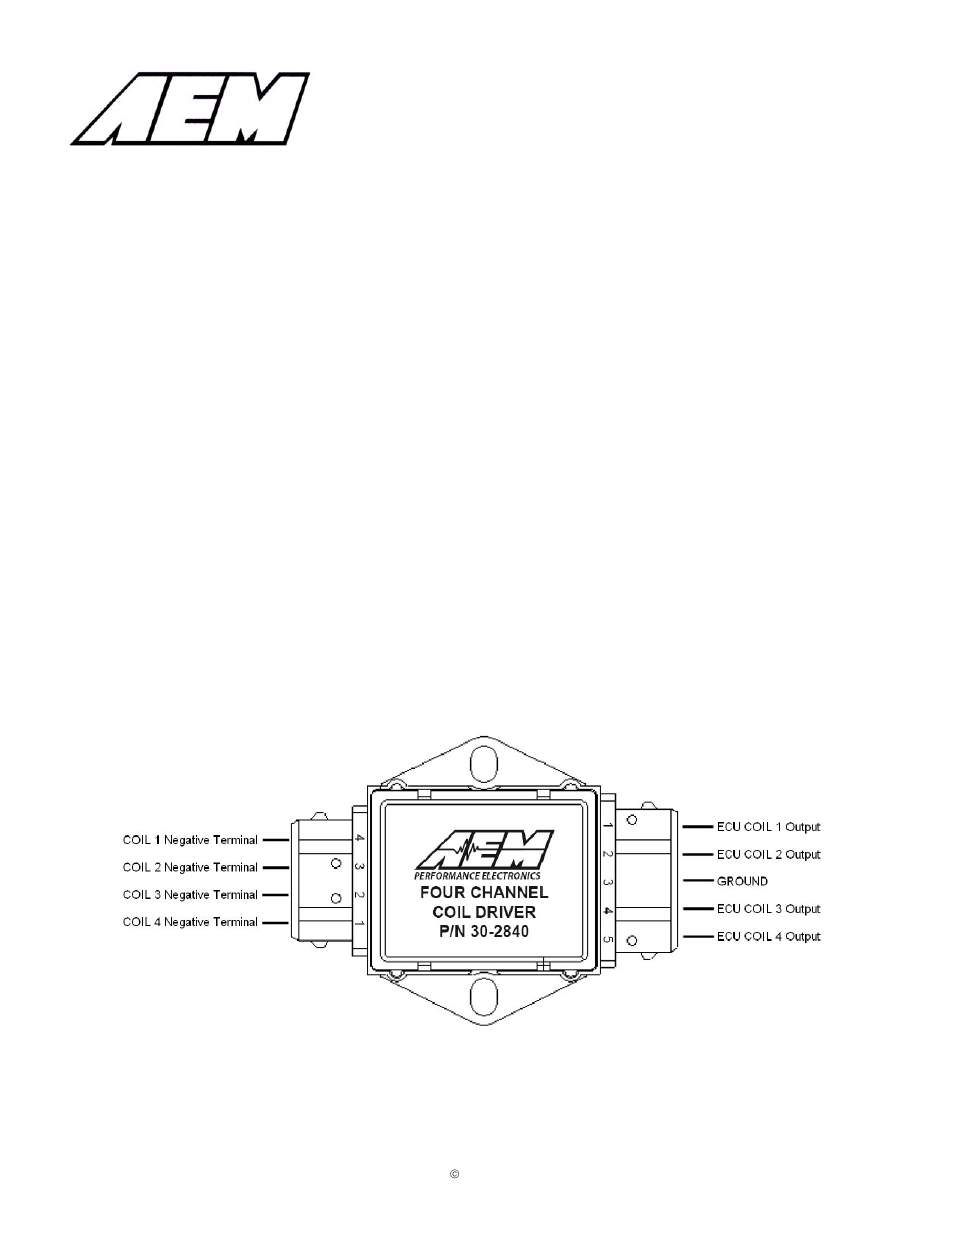 AEM 30-2840 4 Channel Coil Driver User Manual | 2 pages on